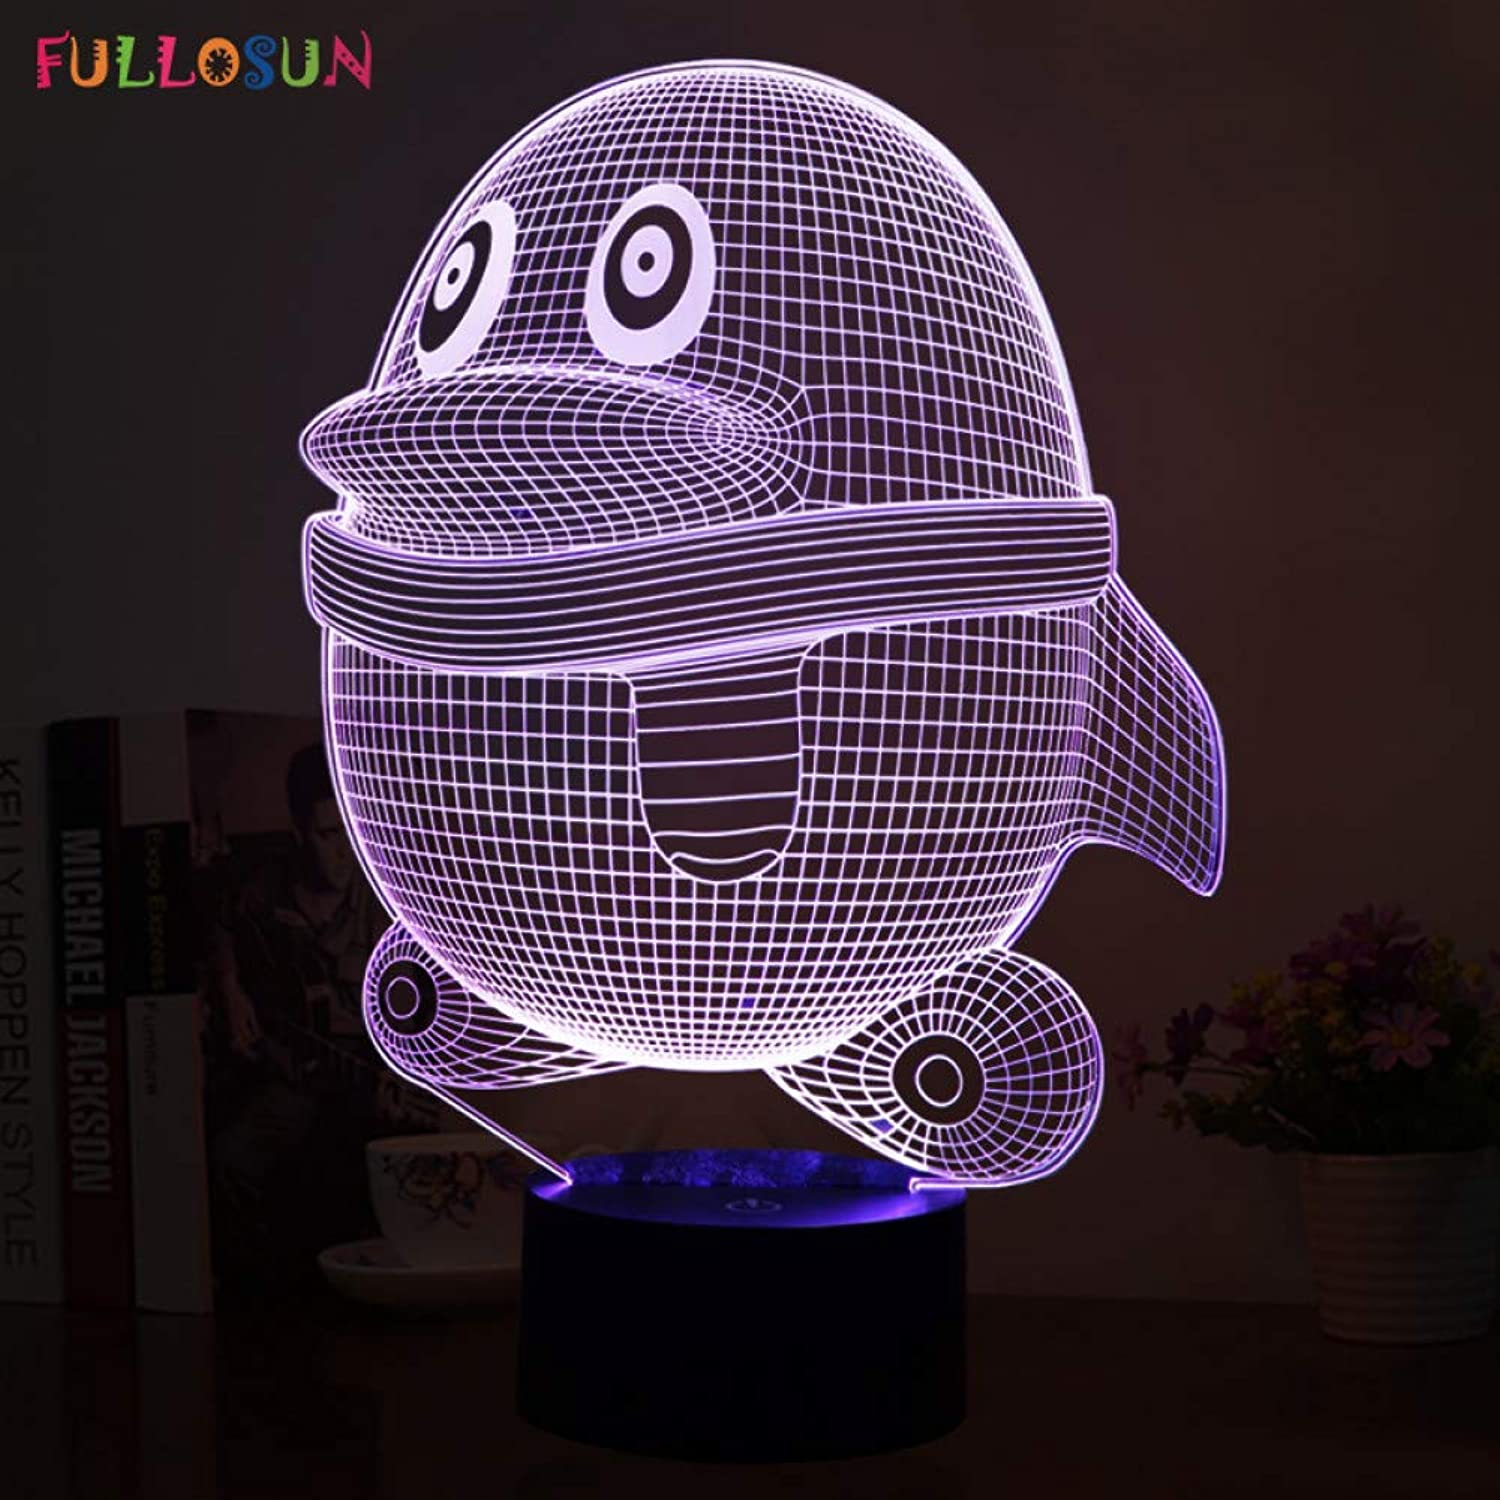 KKXXYD Cutely 3D Led Visual Lights with Penguin Model Led Atmosphere colorful Energy Saving Table Lamp